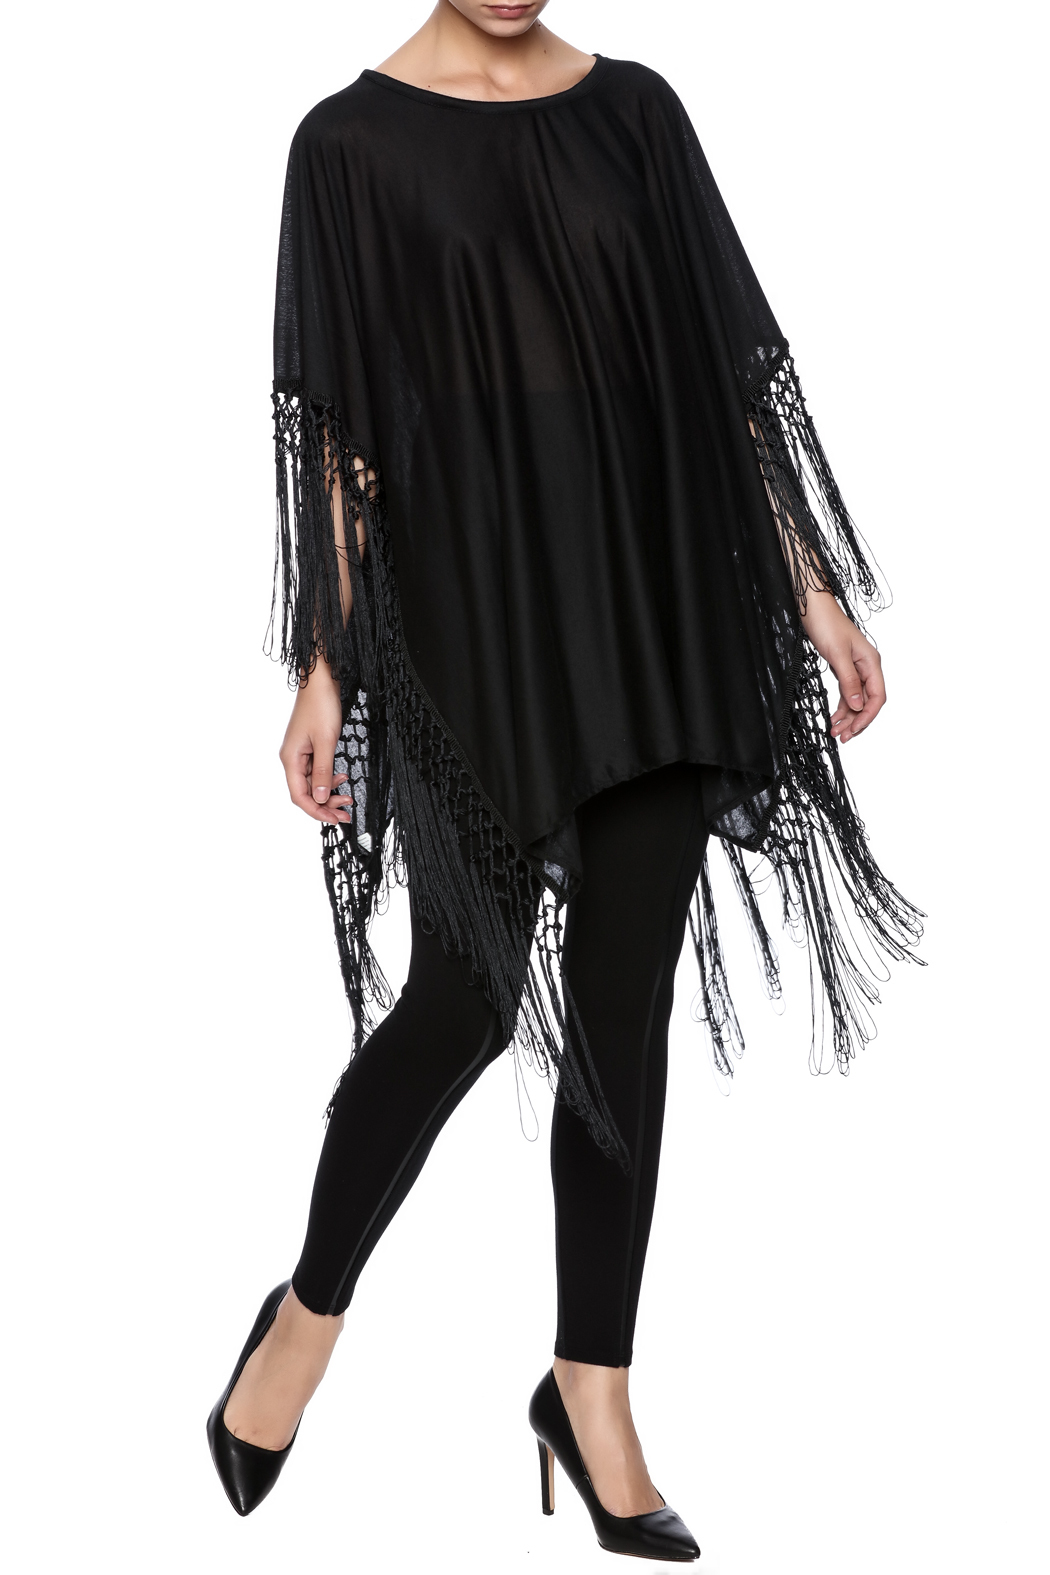 Two's Company Fringed T-Shirt Poncho - Main Image